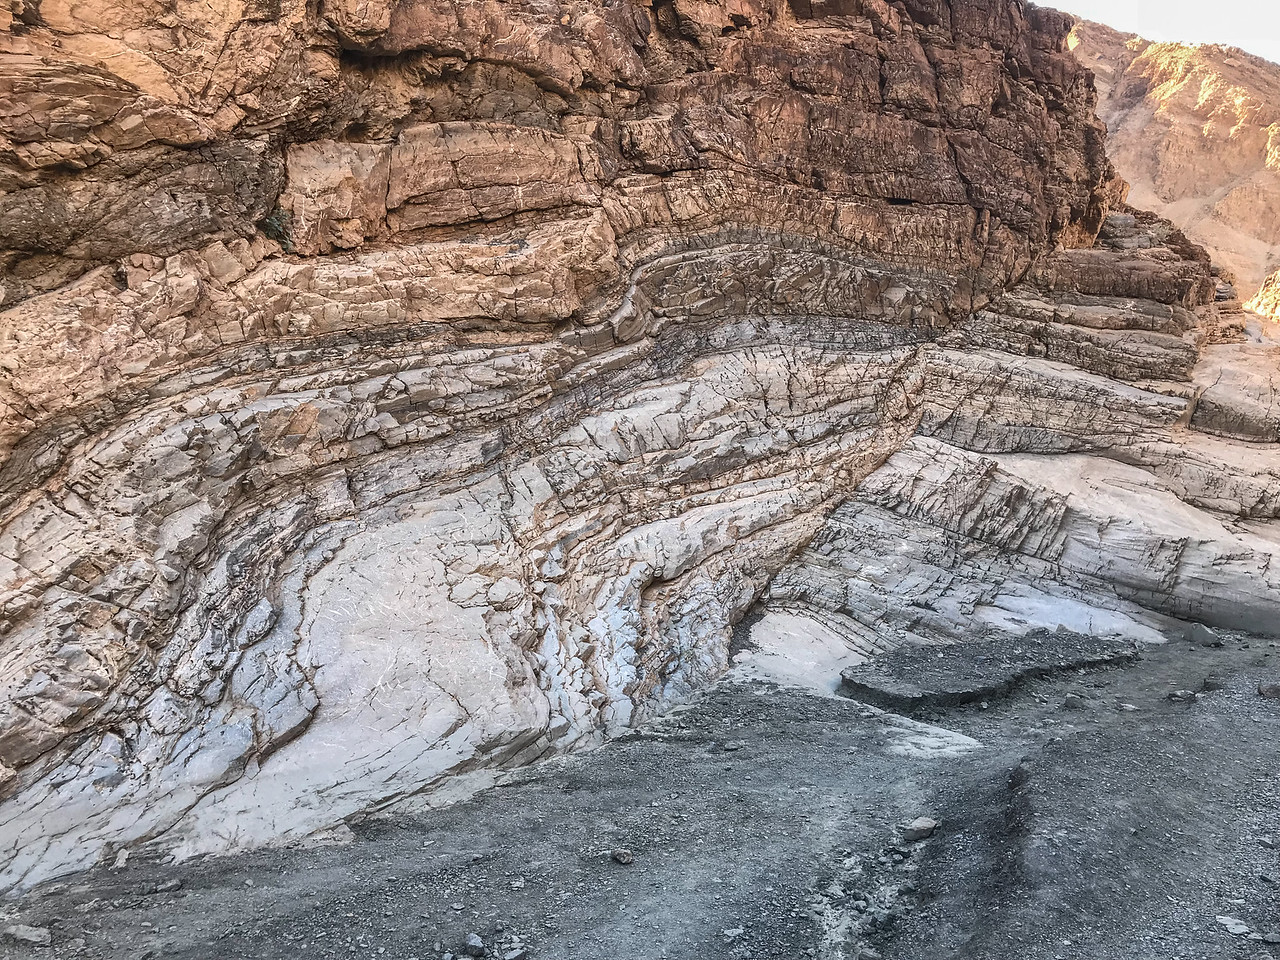 Fascinating Geology on Mosaic Canyon Trail